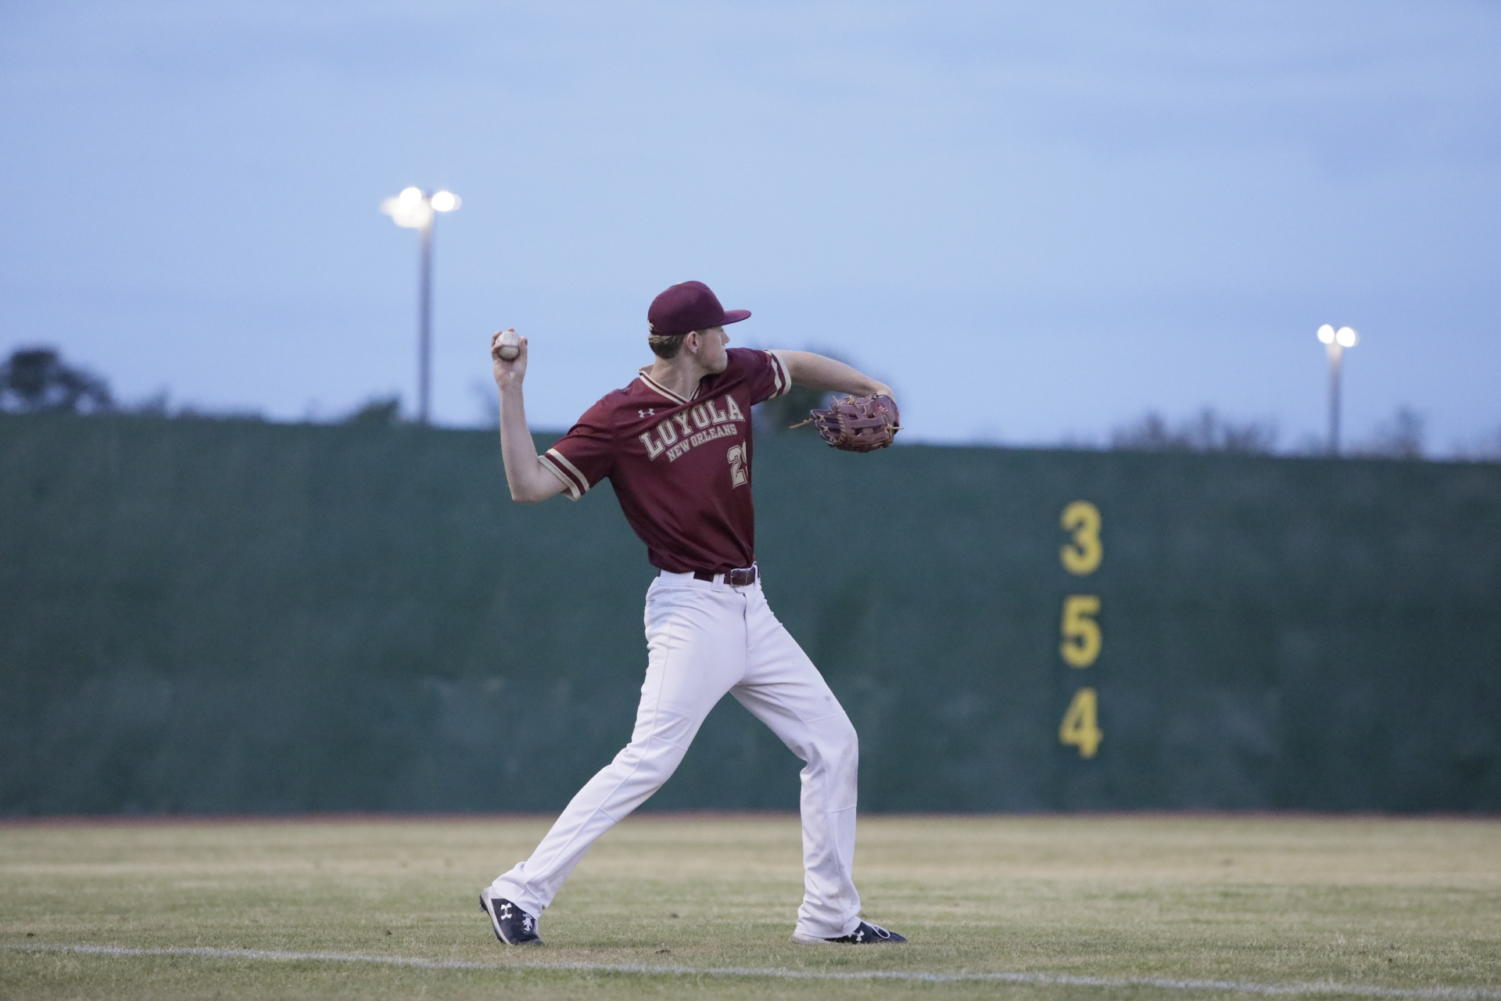 A Loyola baseball player warms up before a home game at Segnette Field. Loyola is now on a six-game losing streak. Photo credit: Andres Fuentes